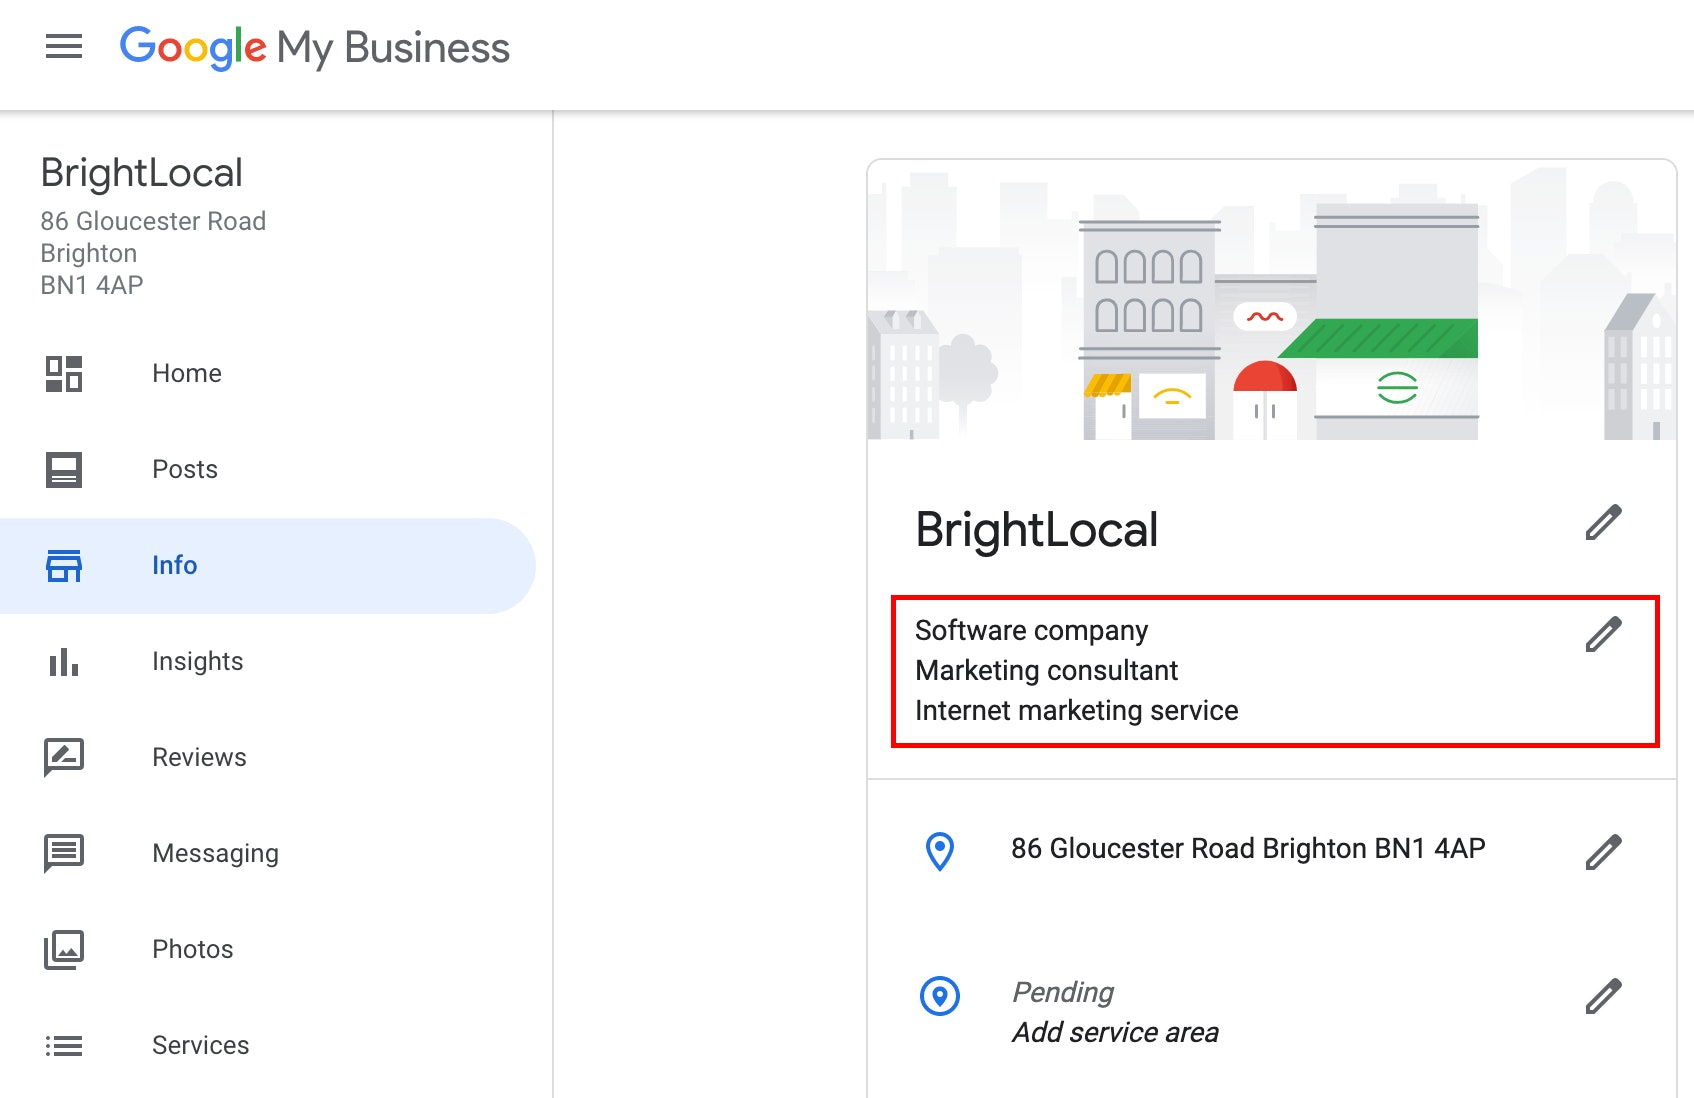 Google My Business categories screenshot